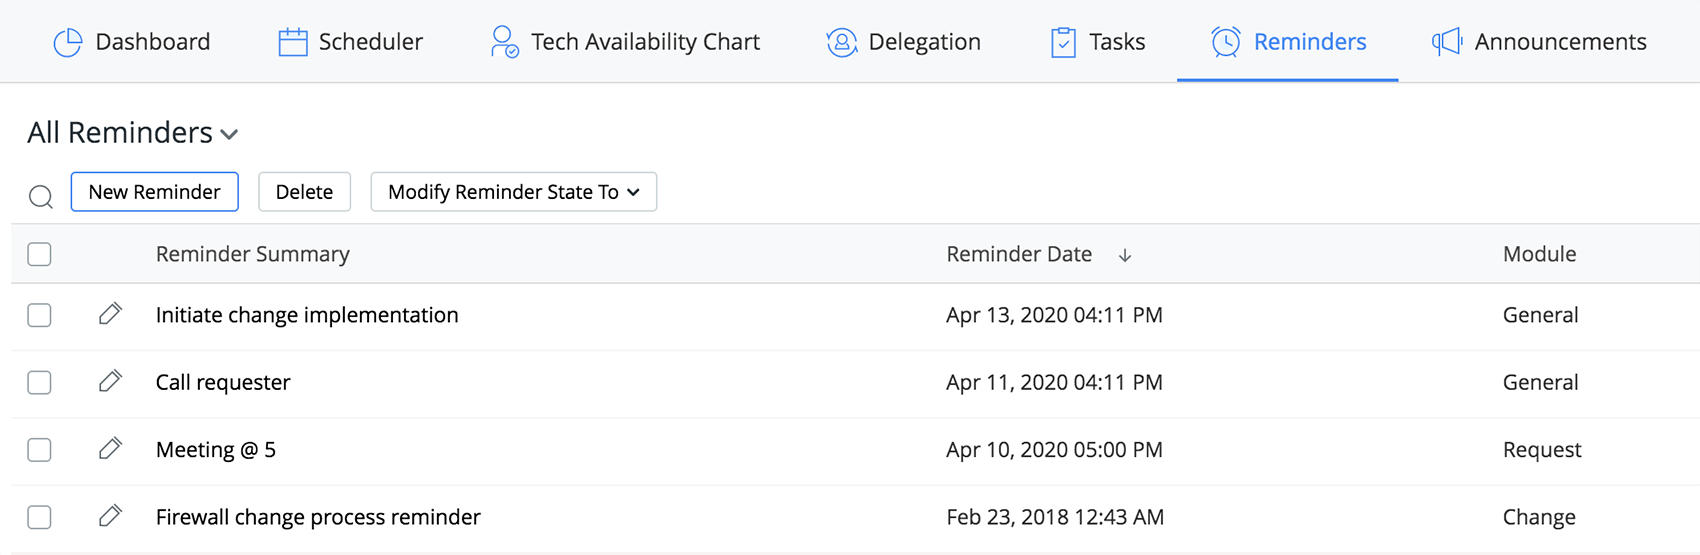 Office 365 calendar integration